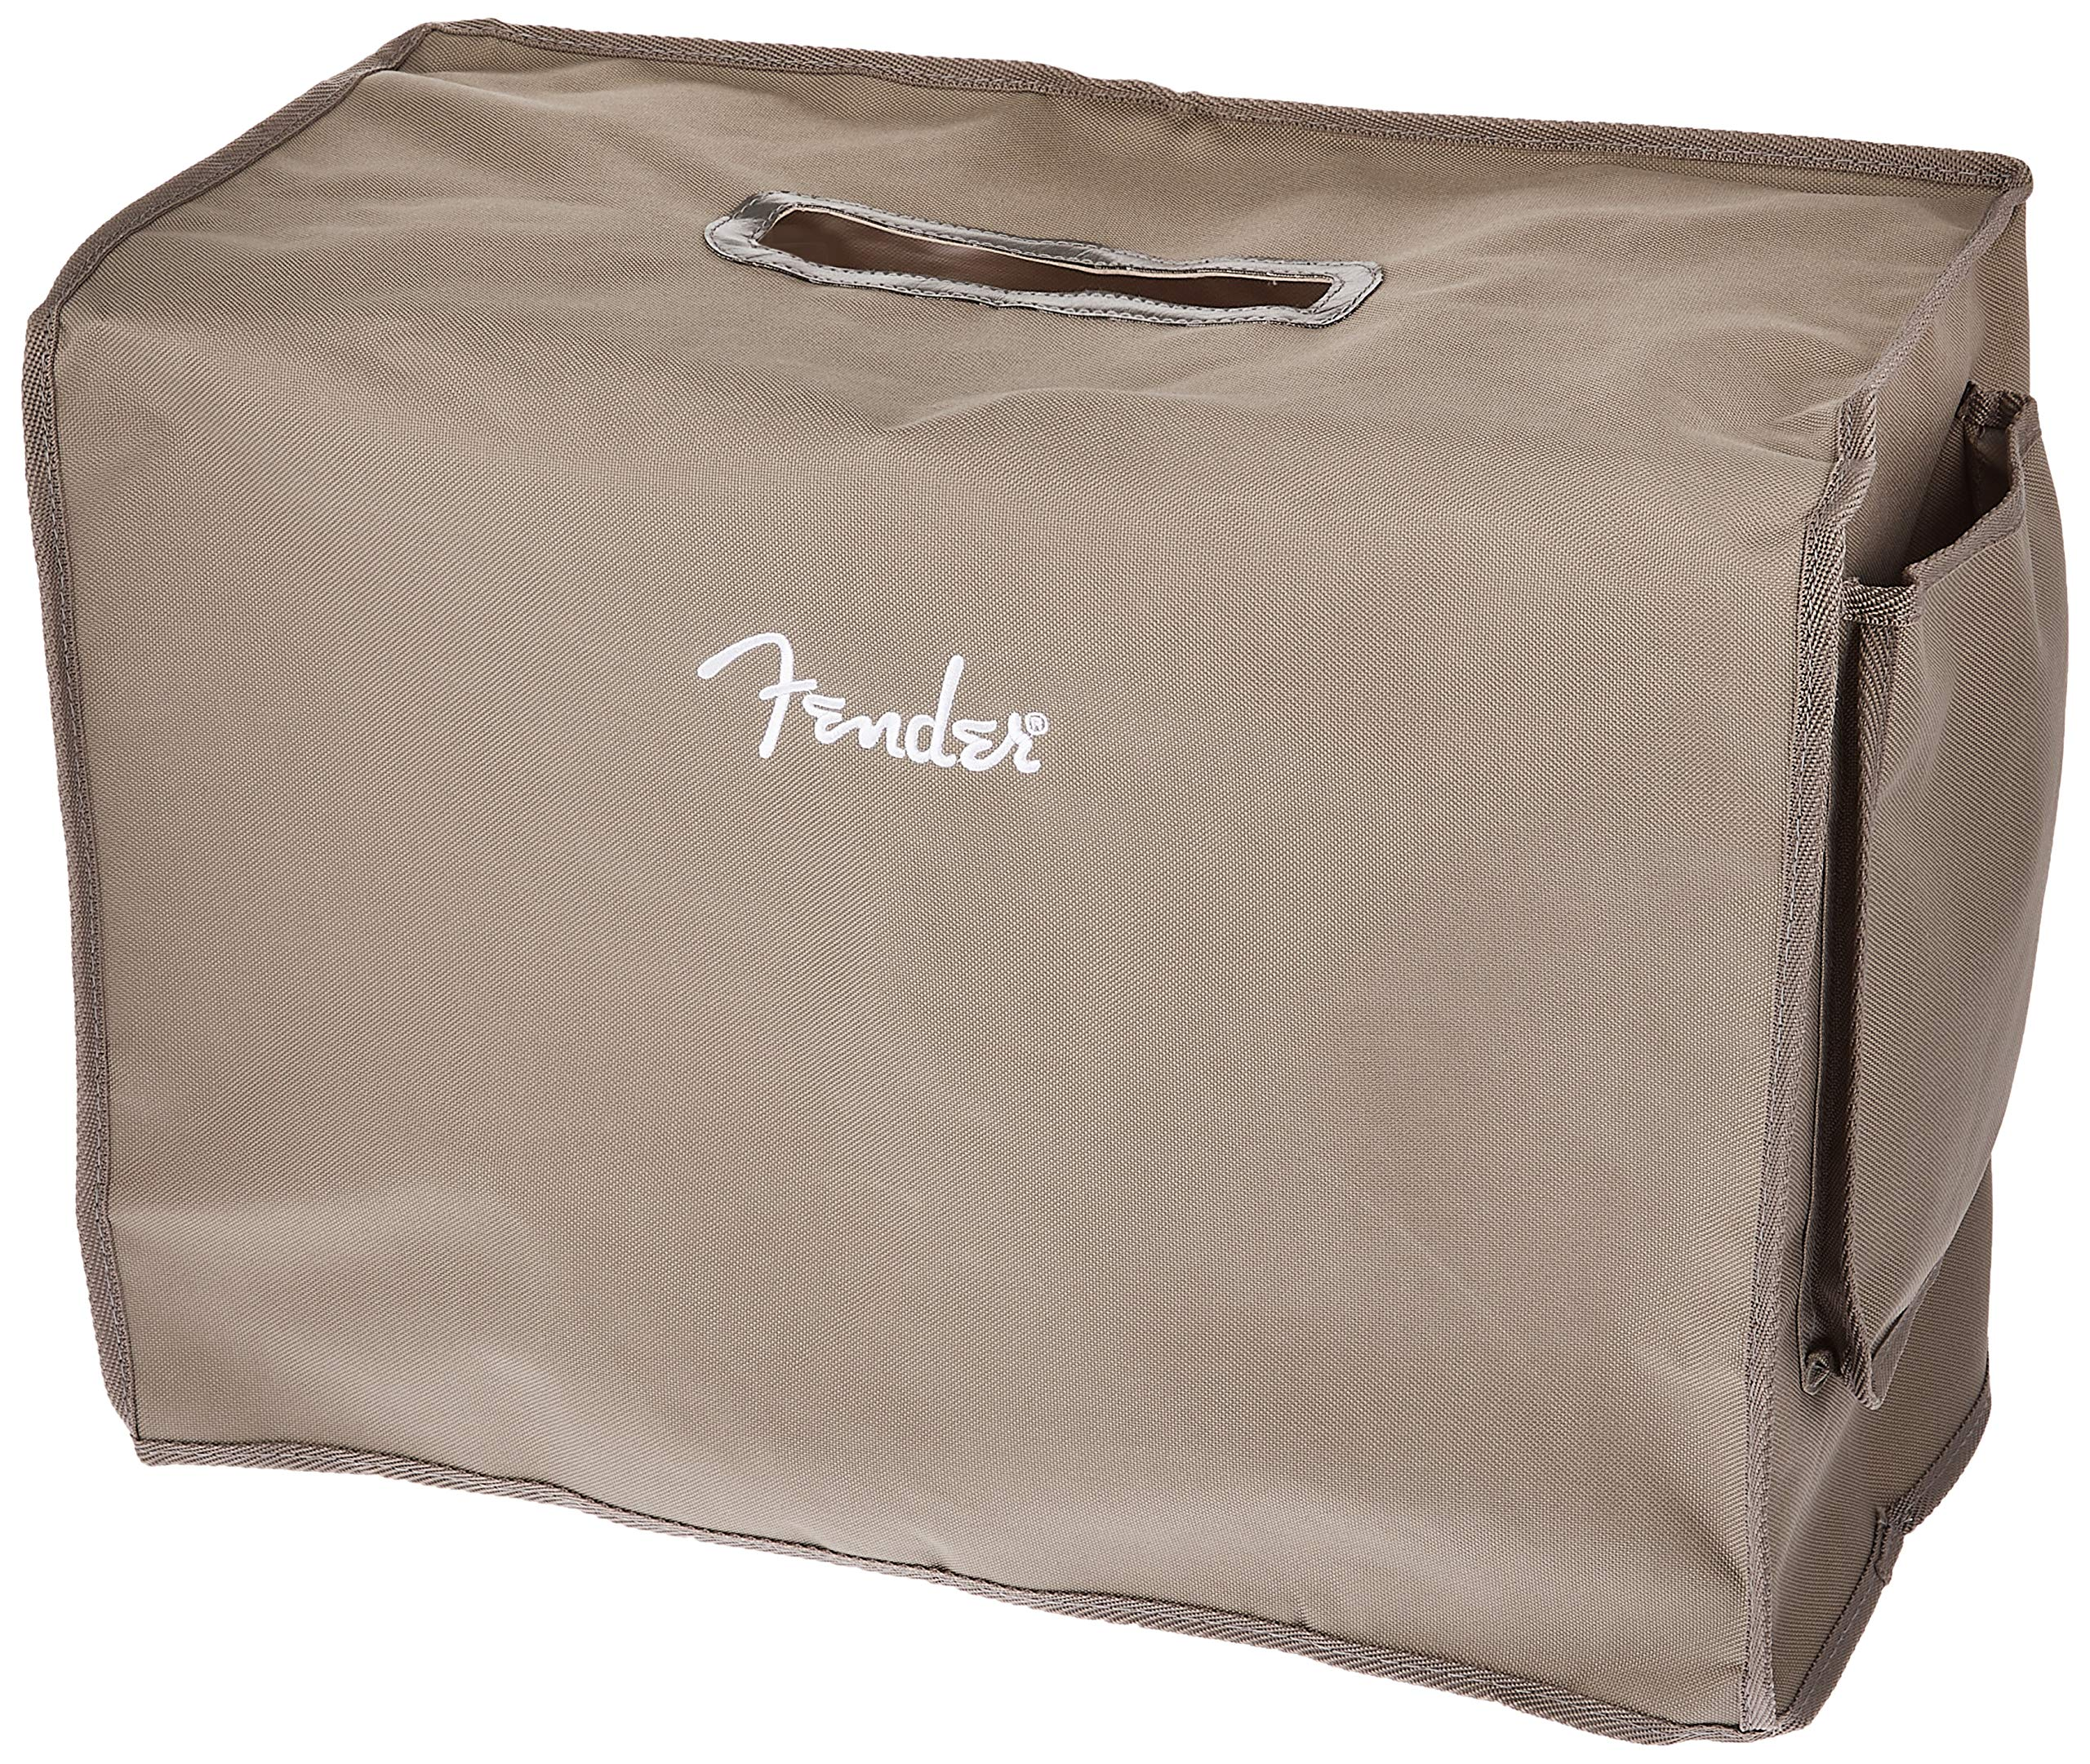 Fender Acoustic 100 Amplifier Cover by Fender